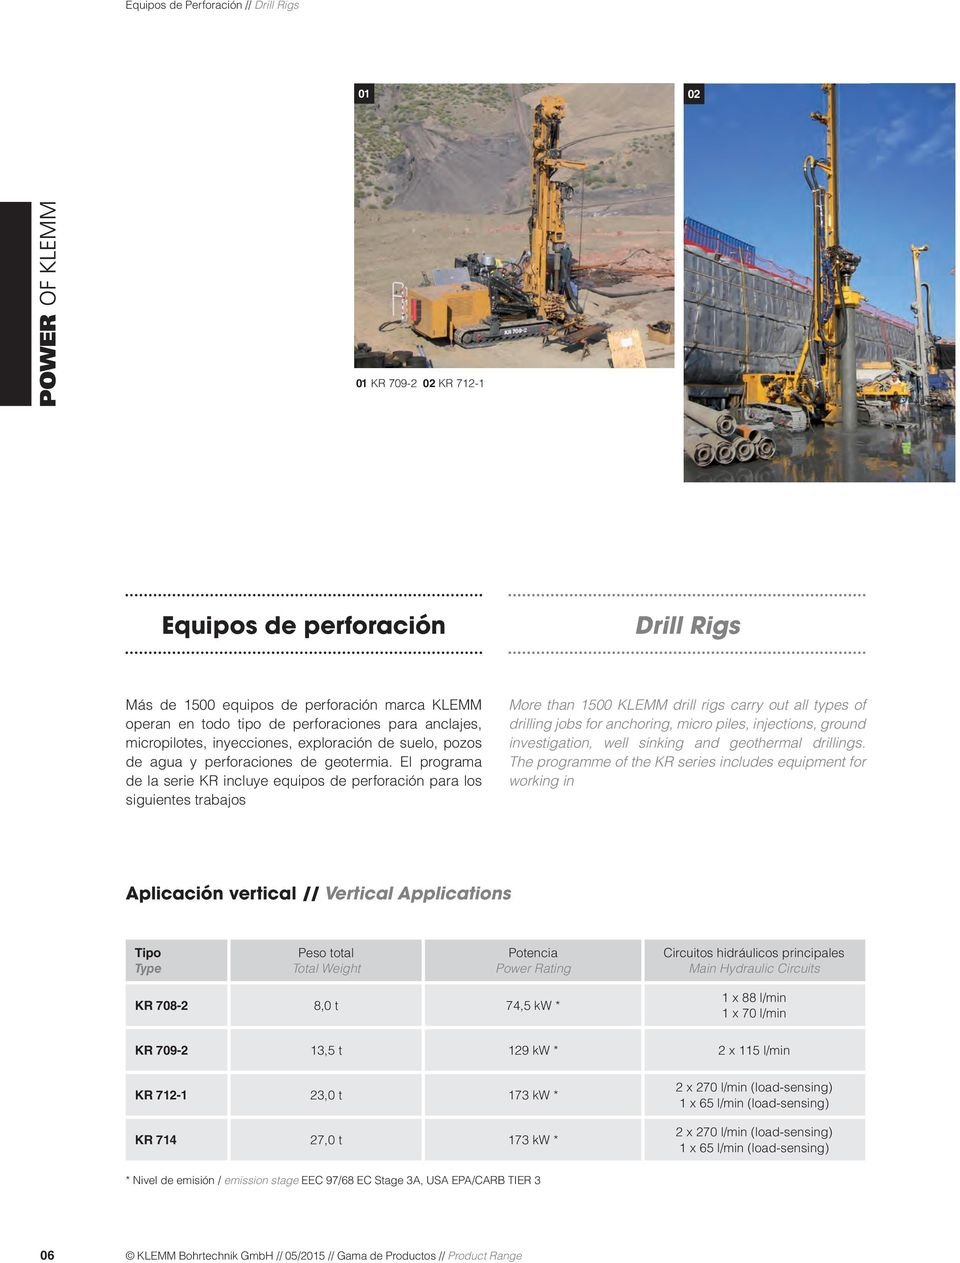 El programa de la serie KR incluye equipos de perforación para los siguientes trabajos More than 1500 KLEMM drill rigs carry out all types of drilling jobs for anchoring, micro piles, injections,